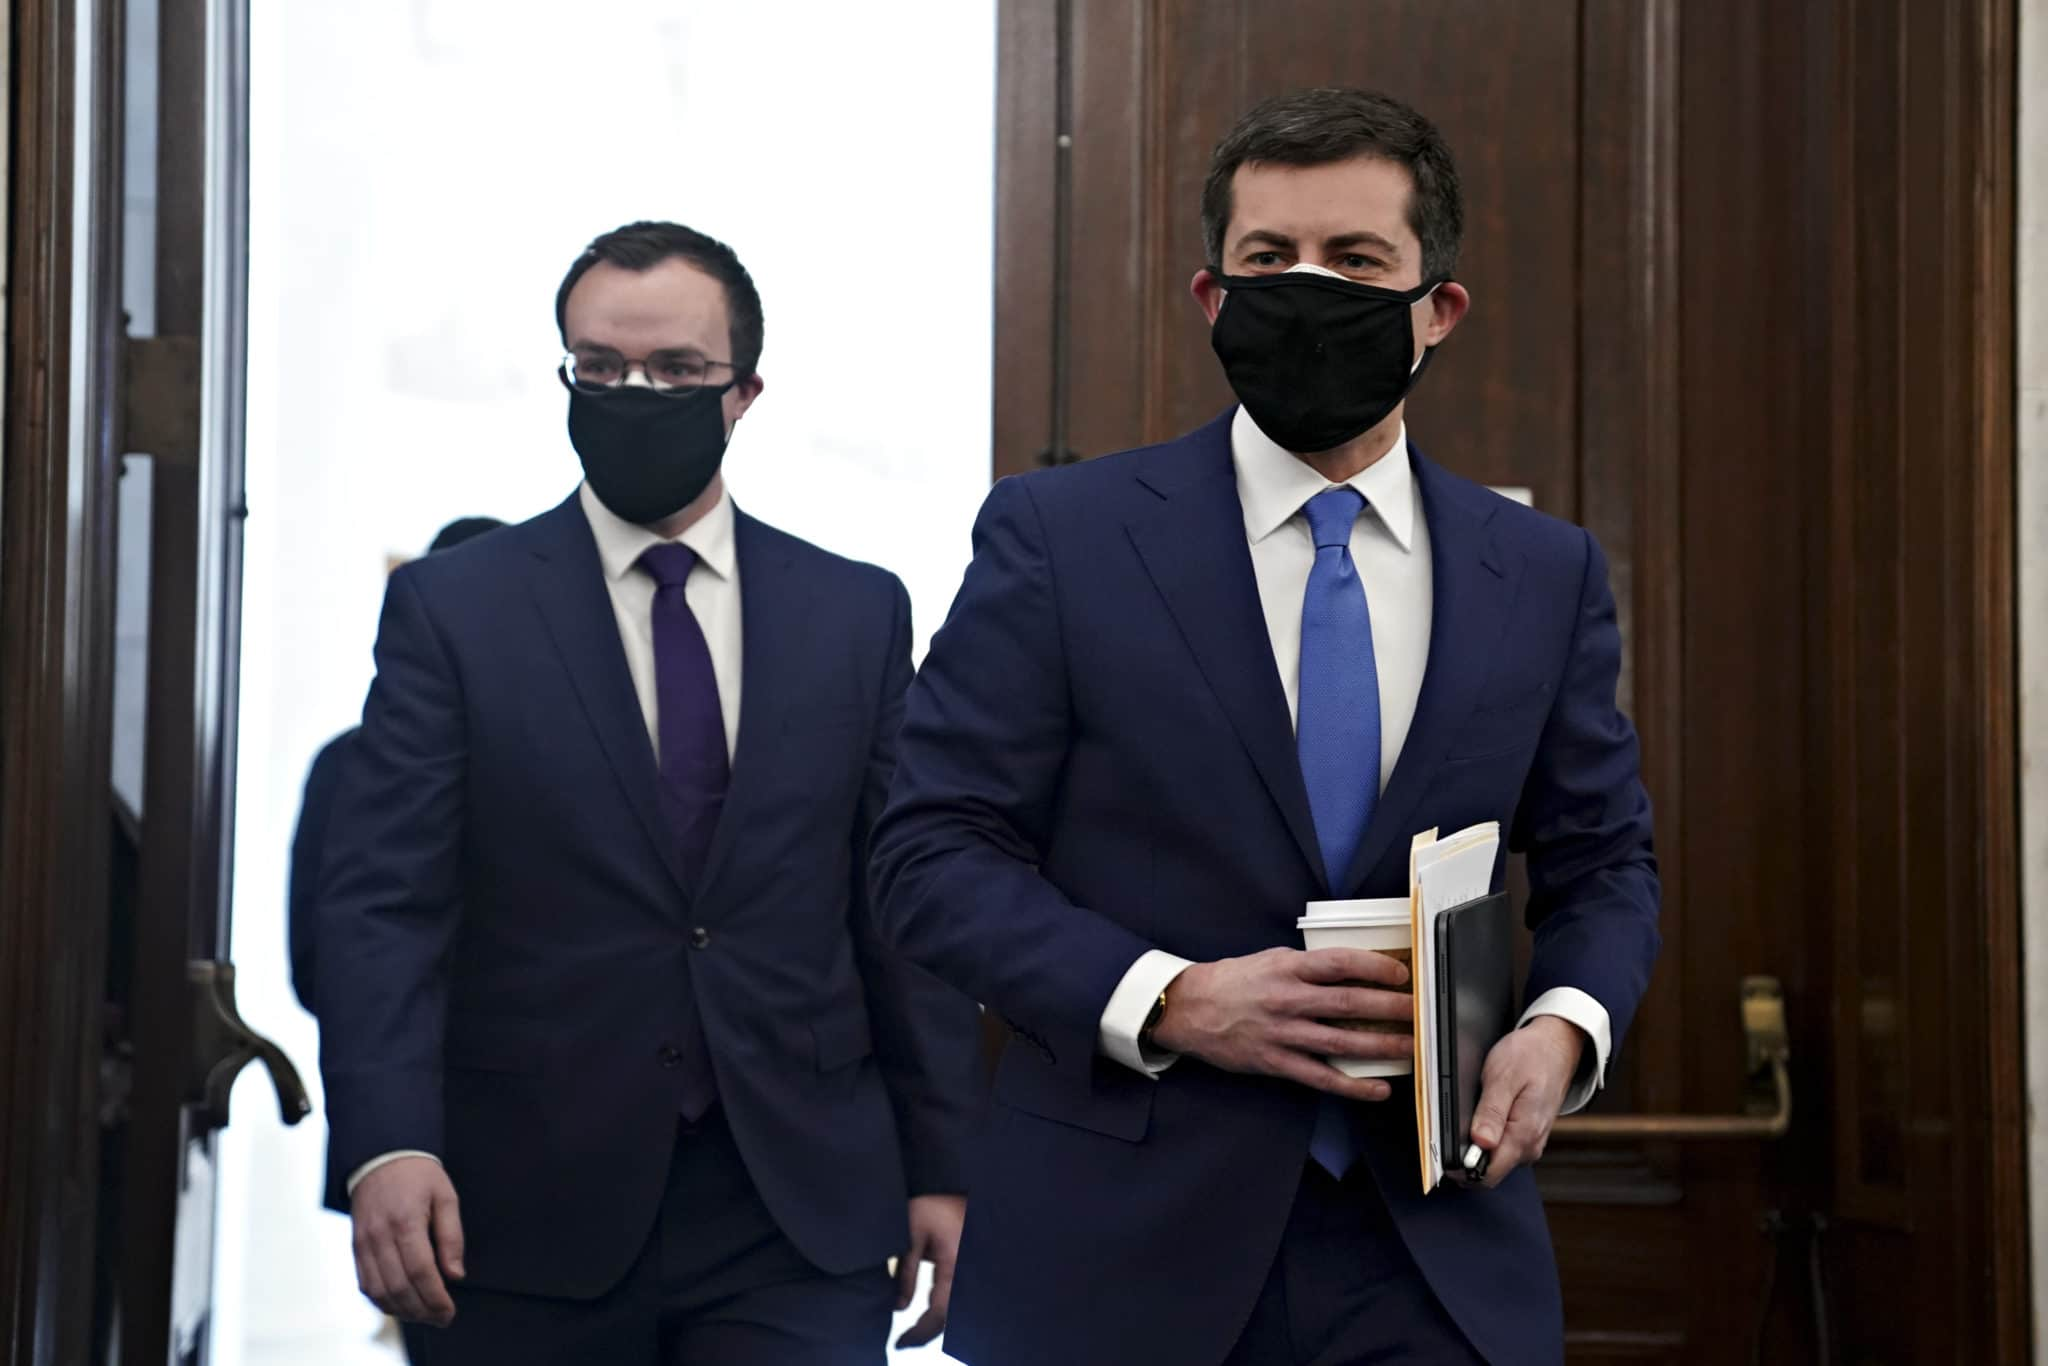 Pete Buttigieg and Chasten Buttigieg, both wearing suits, walk through the doors in the Senate